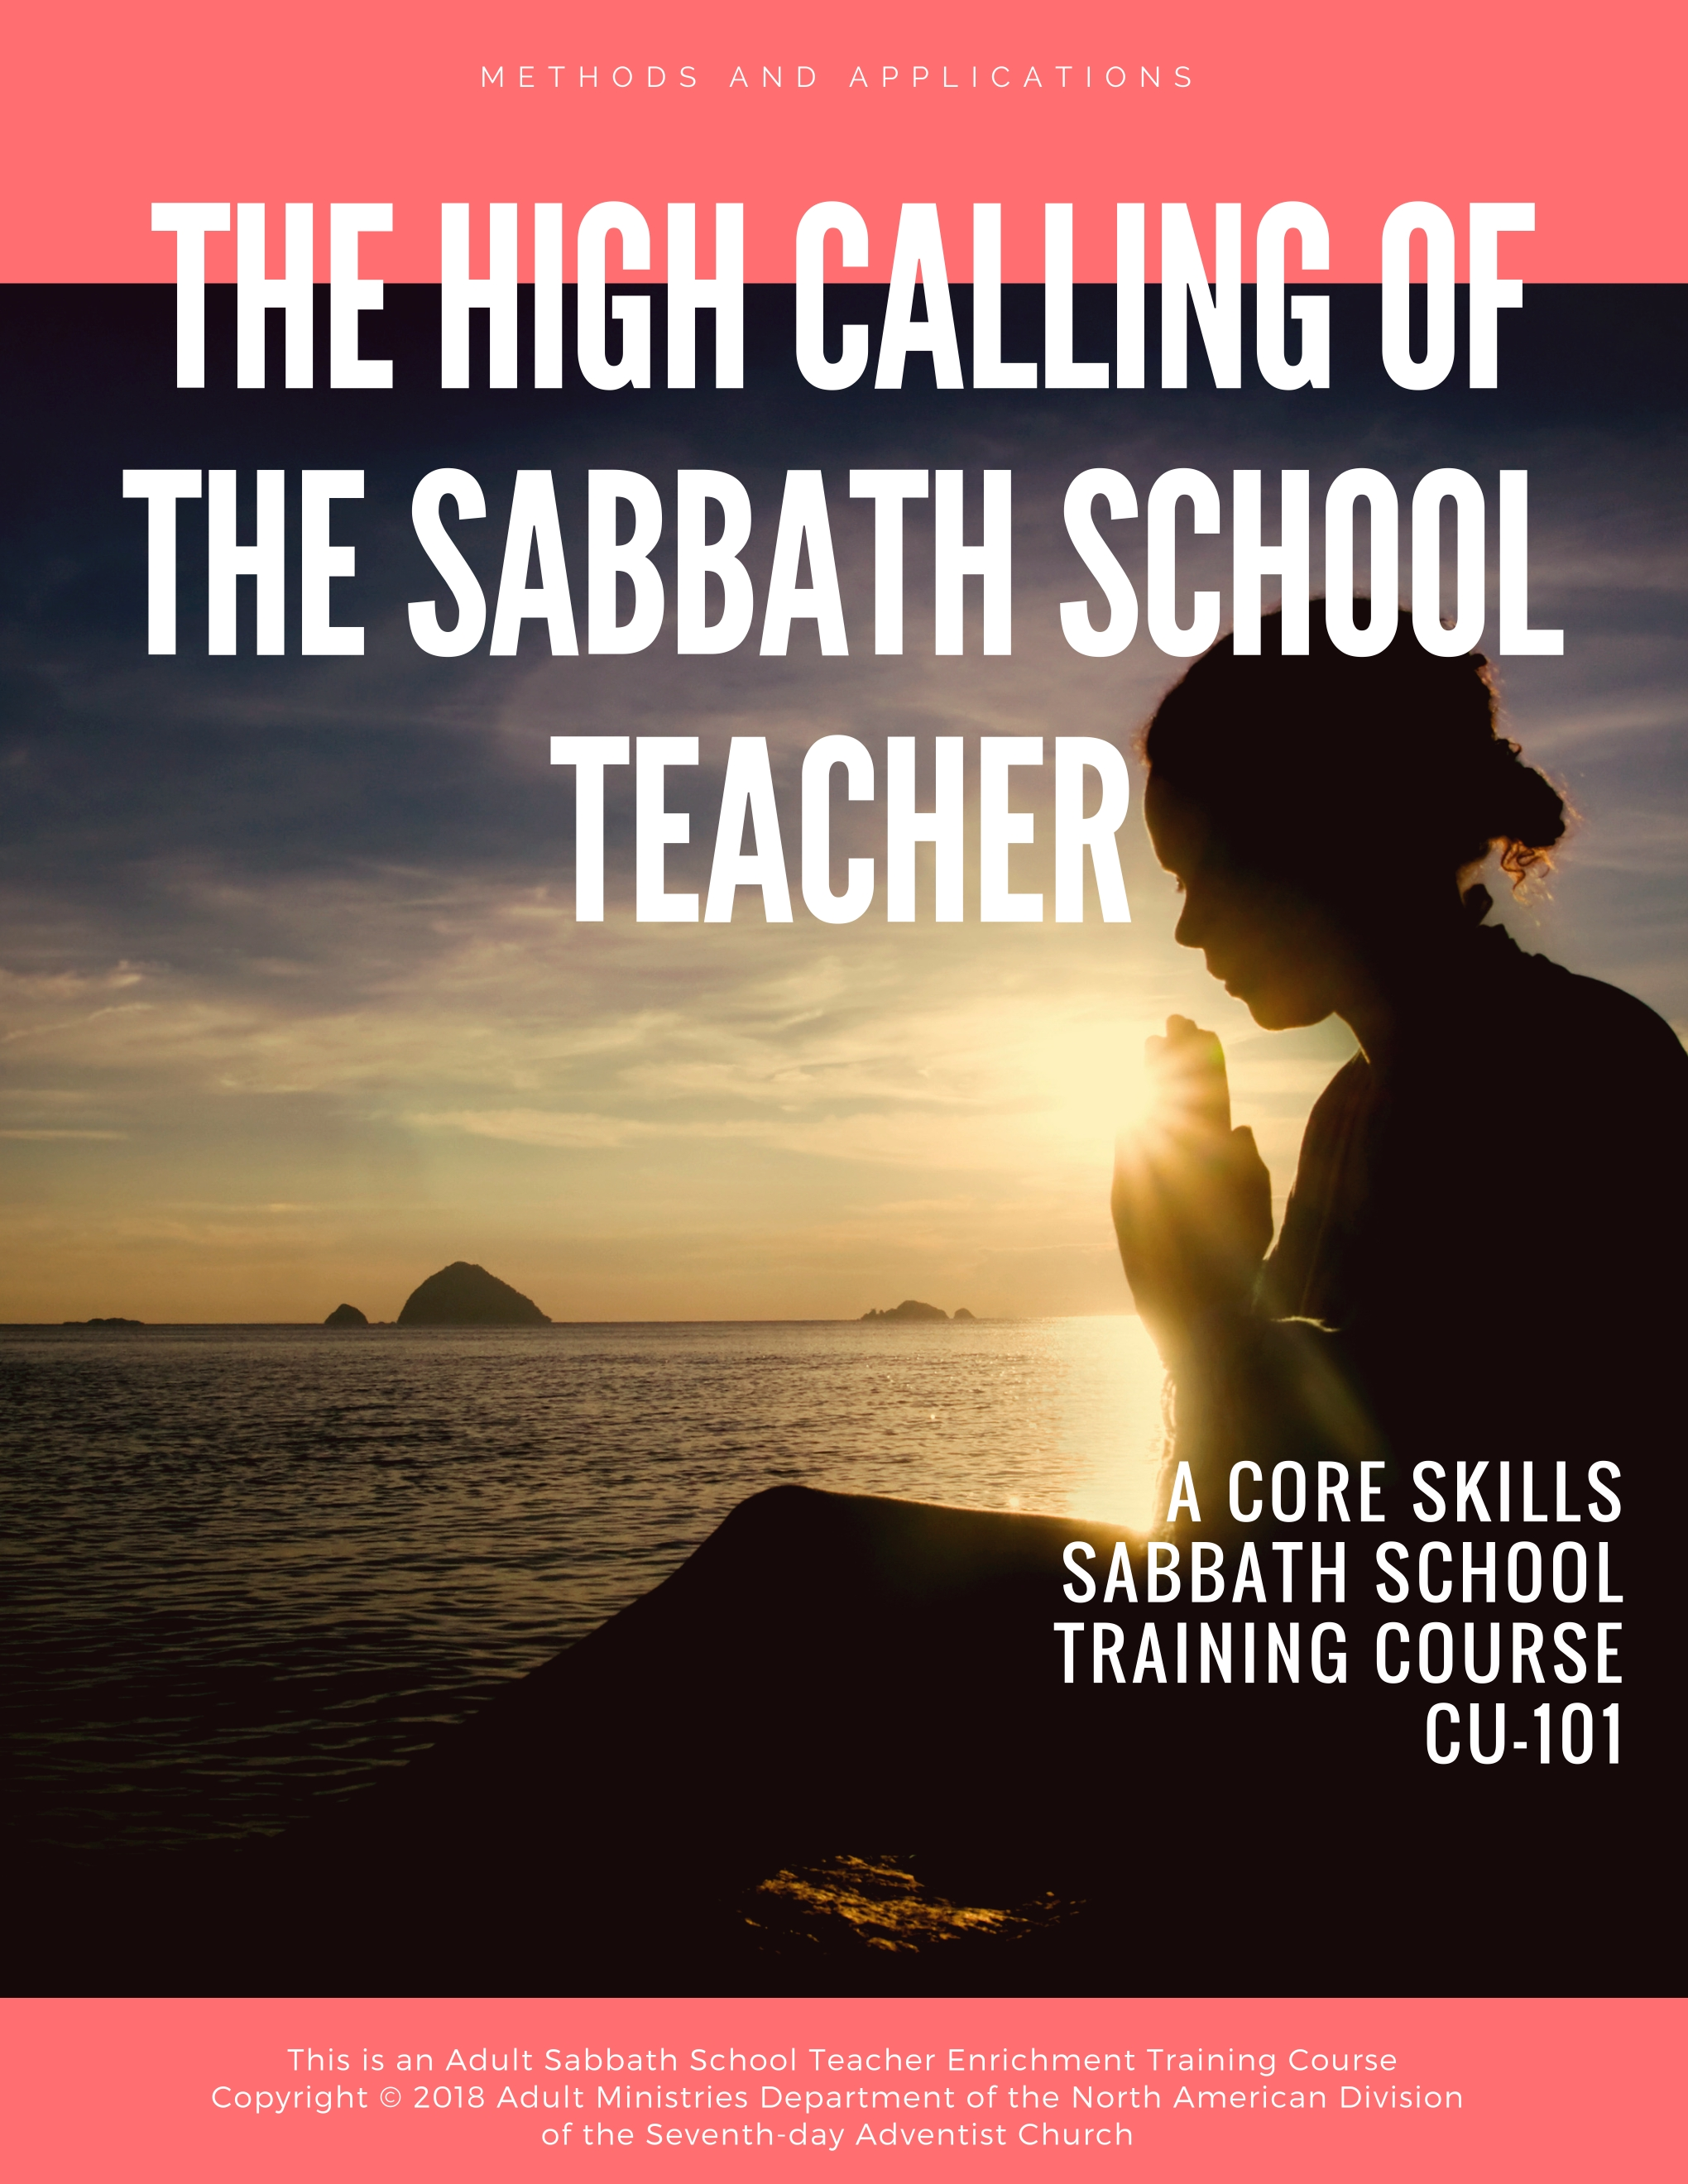 In this course the teacher will acquire a knowledge and understanding of his or her spiritual impact within the context of Sabbath School teaching, including what the Bible says about wisdom, sphere of influence, personal spiritual growth, and attitude. - <<<CLICK COVER TO VIEW